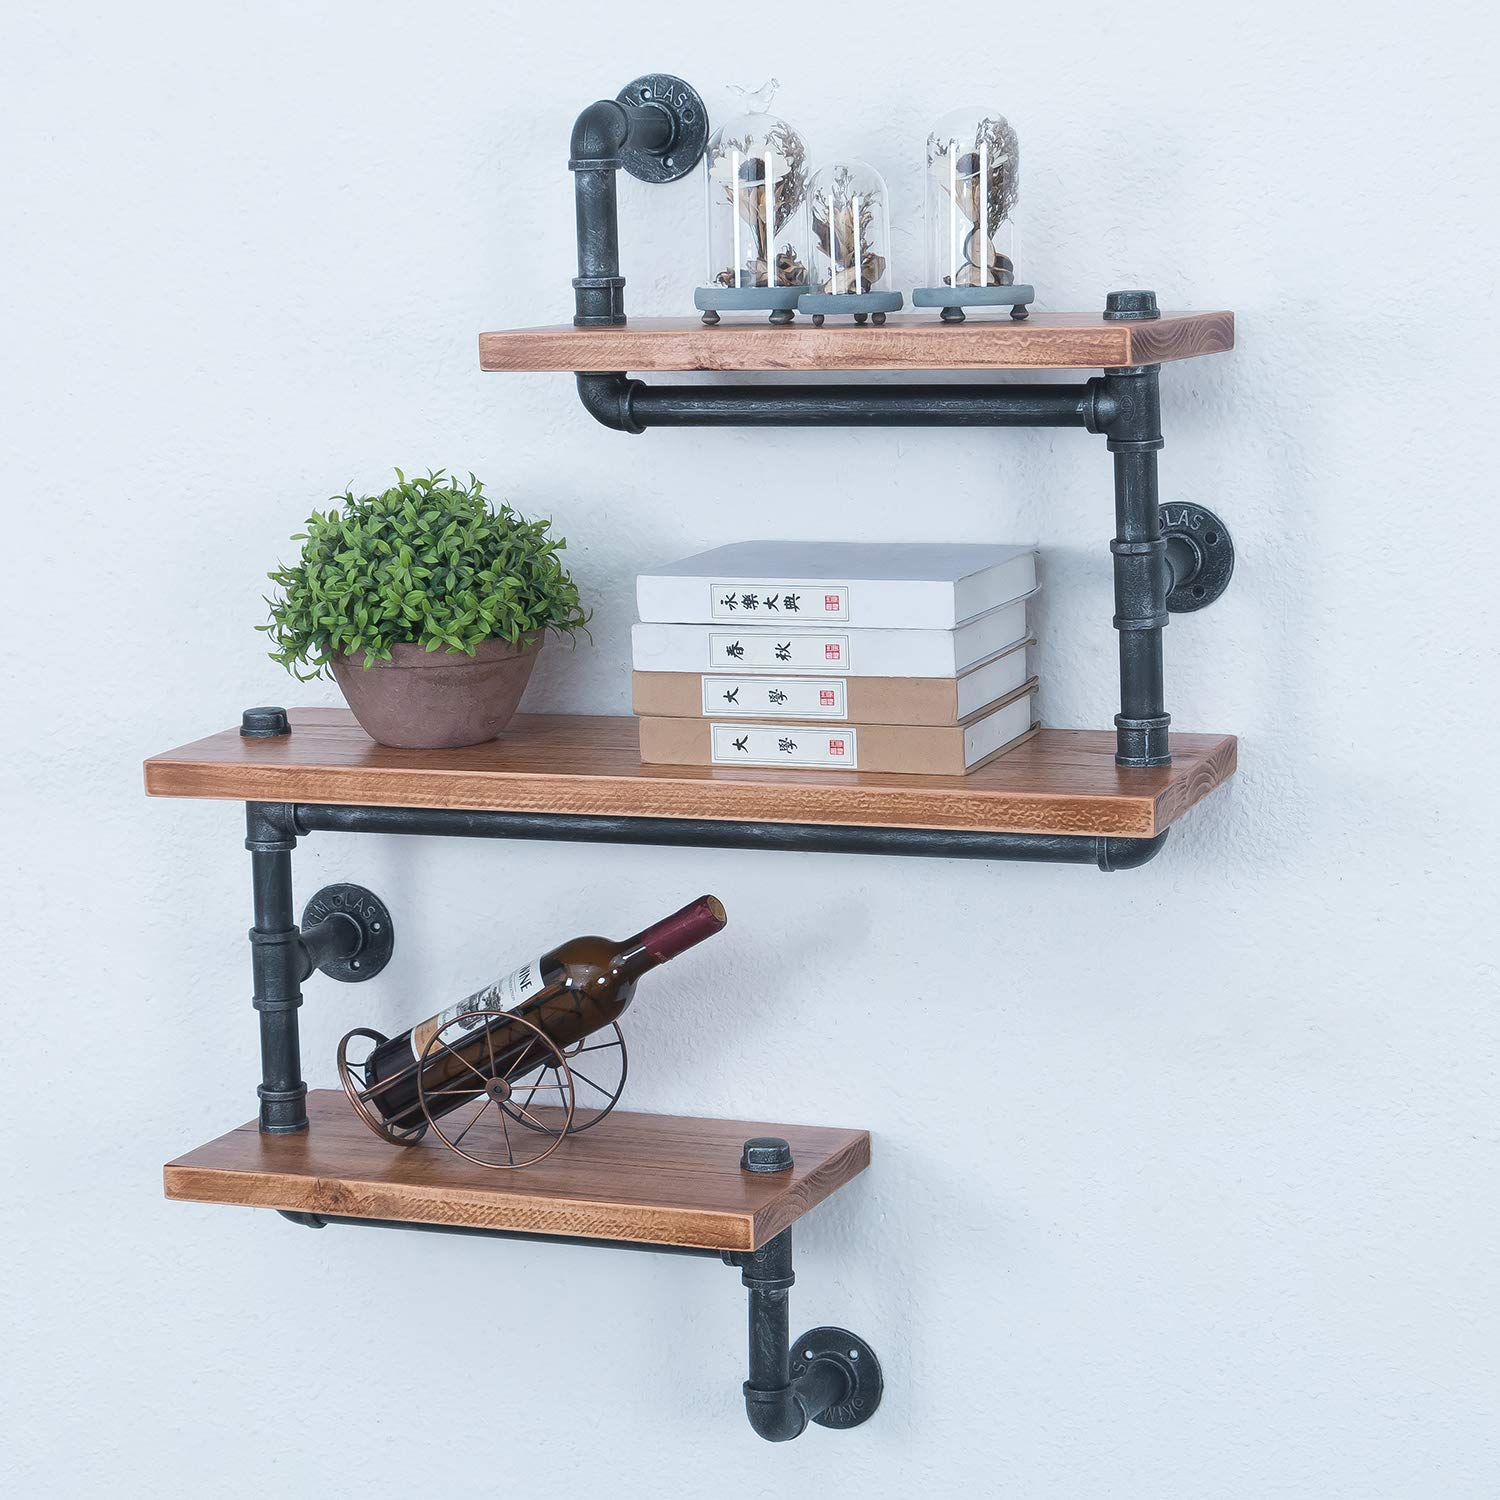 industrial pipe shelves wall mounted retro wood floating shelf tiers shelving hung hanging mount rustic bookshelf ikea entertainment center hack wooden with hangers besta kitchen